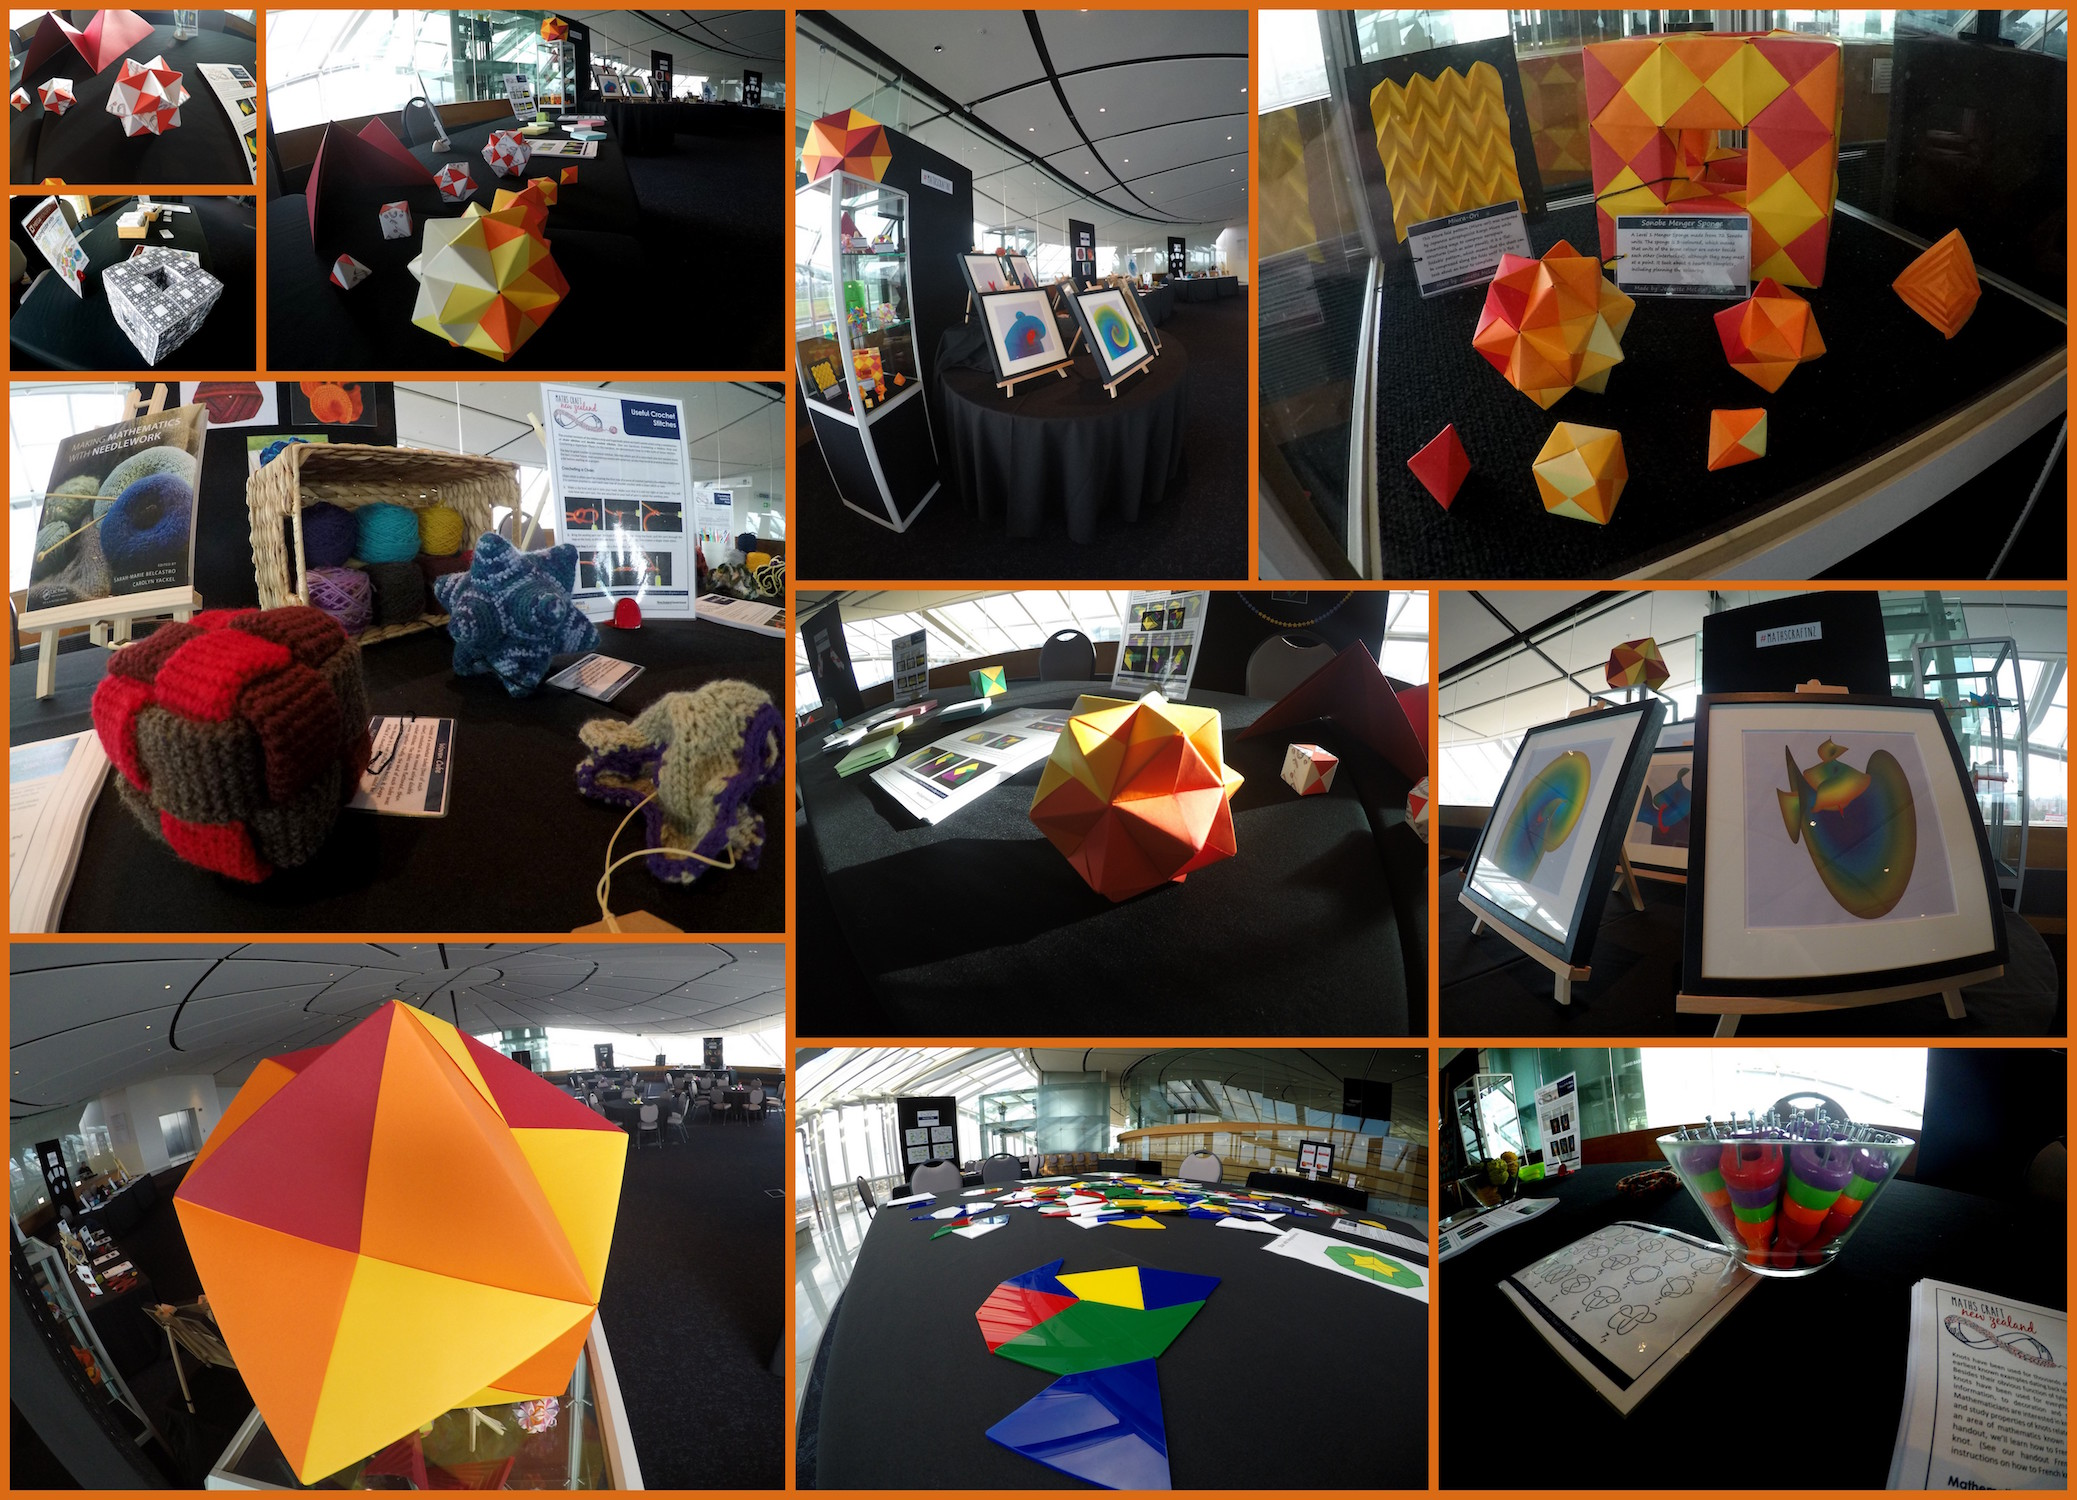 Set up and ready to welcome visitors to the Maths Craft Festival 2017 in Auckland